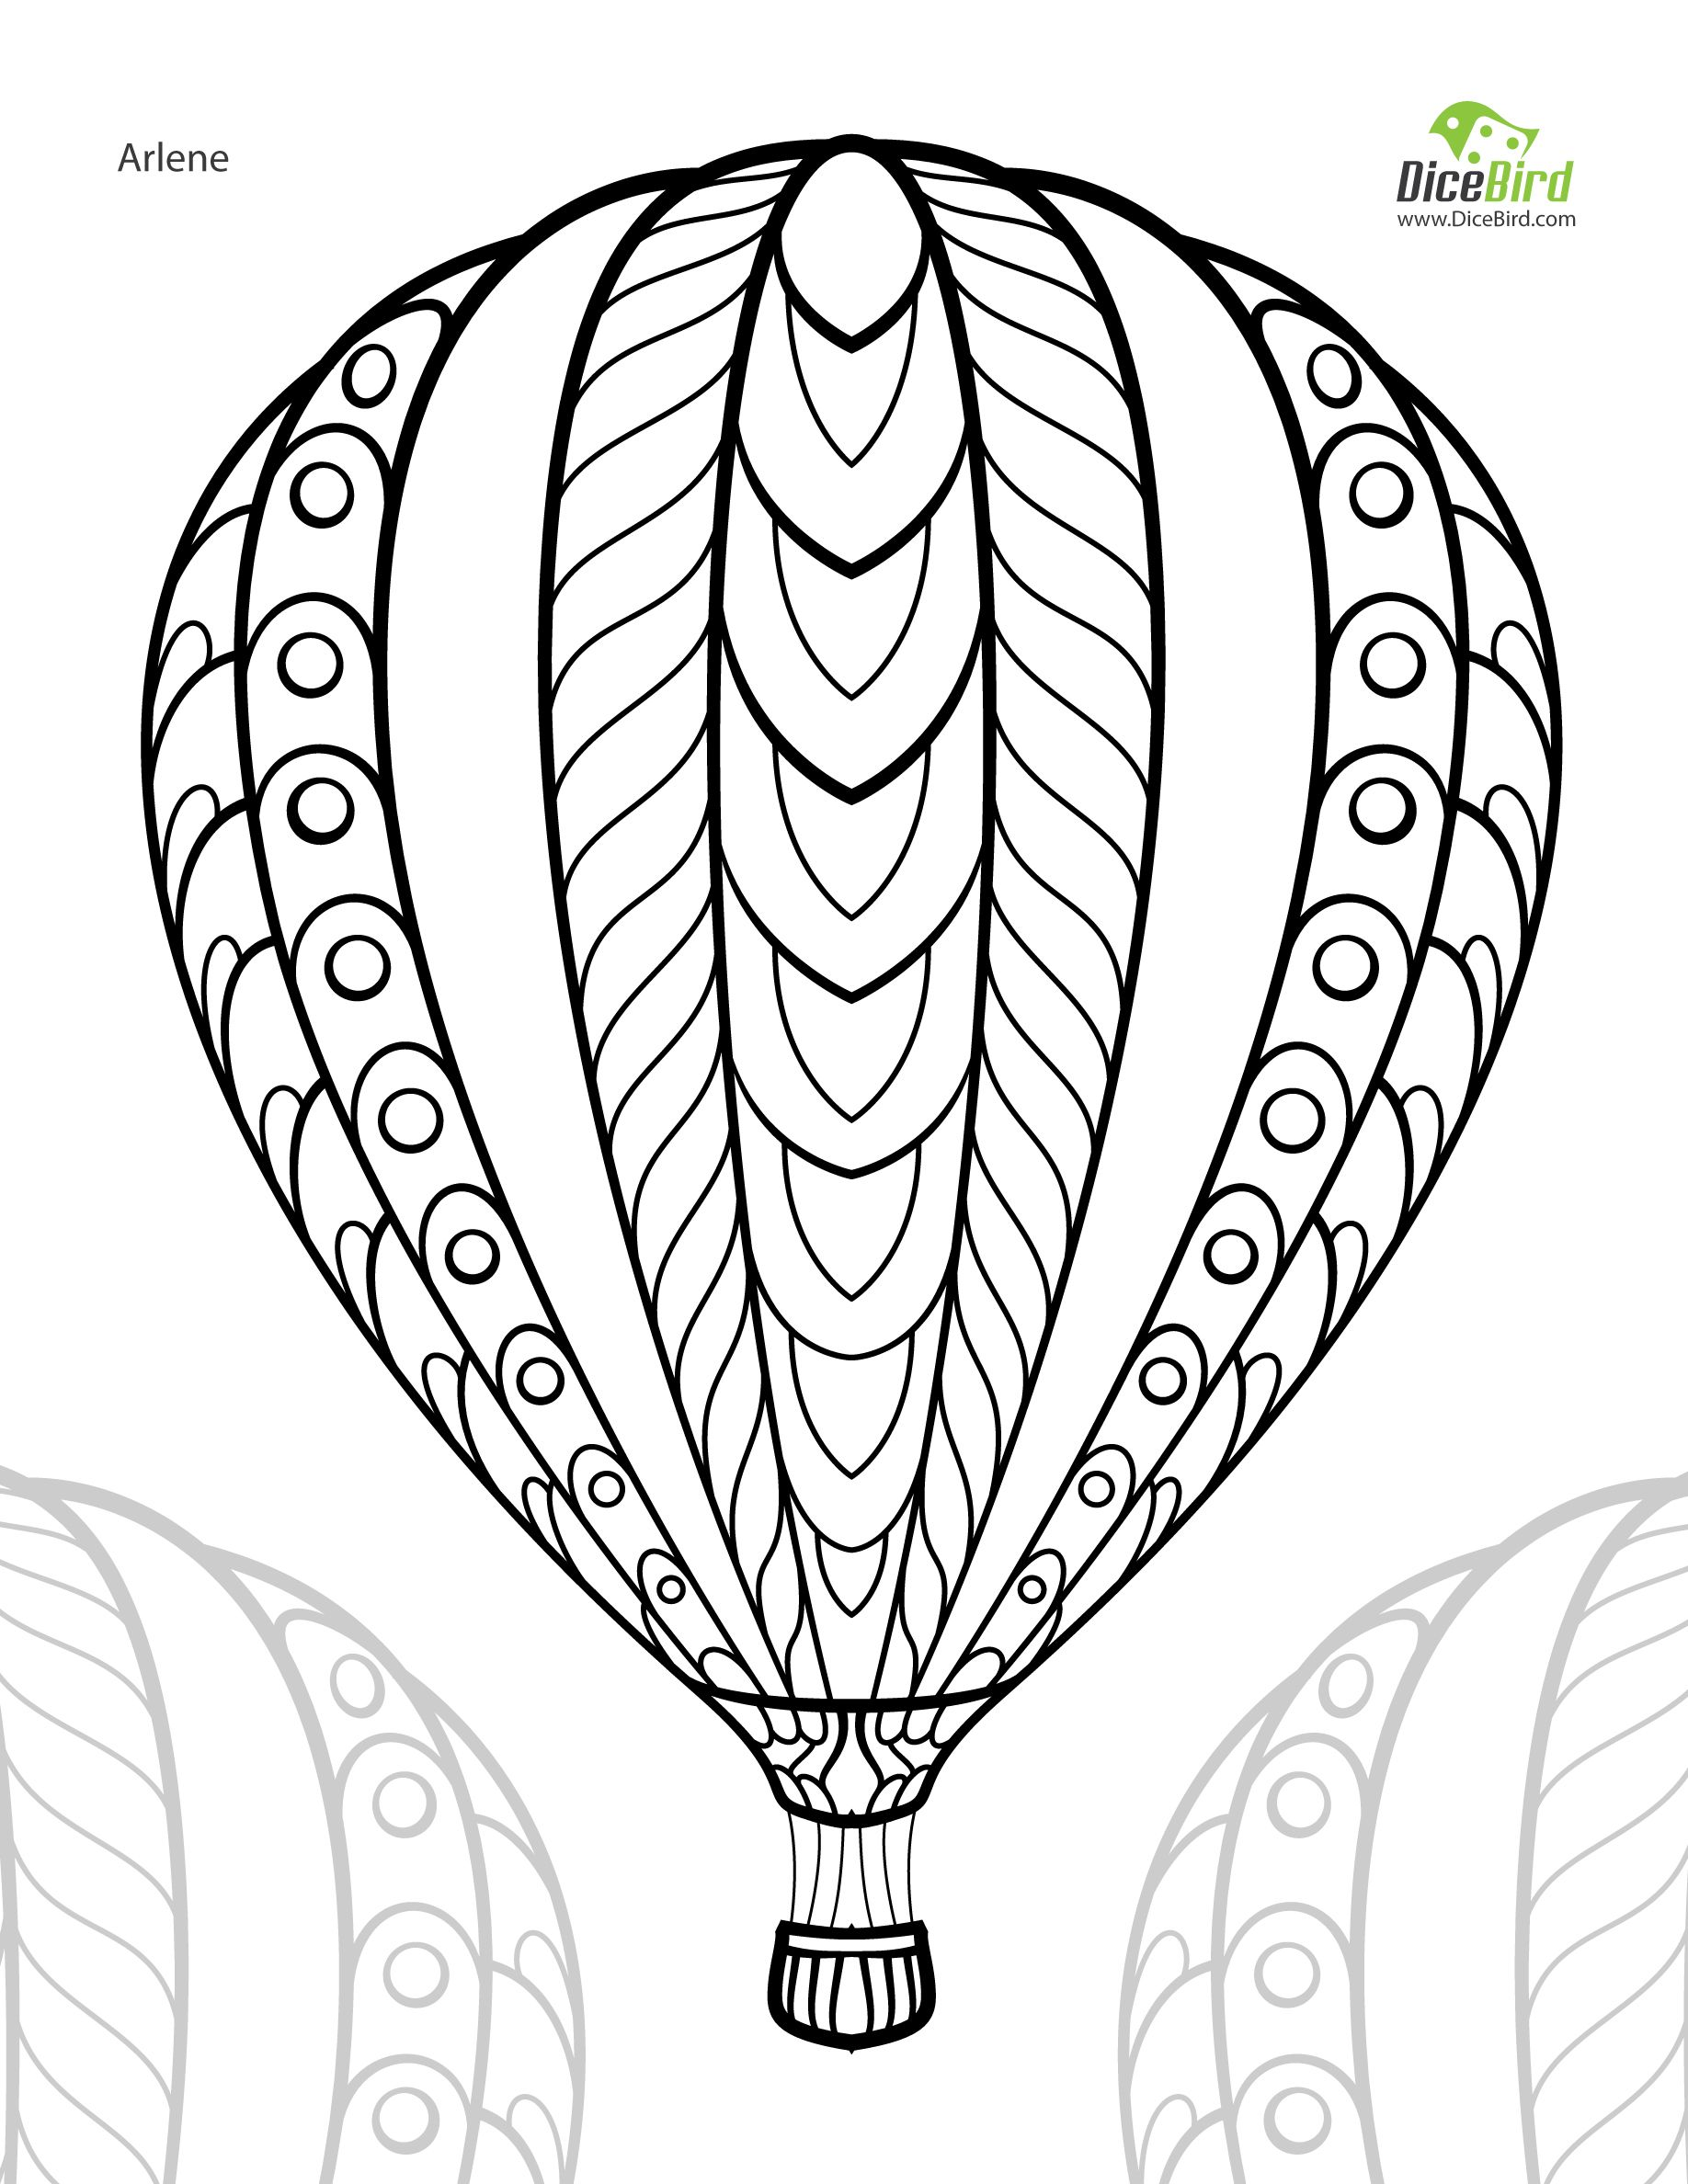 Free coloring pages august - Hot Air Balloon Adult Free Printable Colouring Page